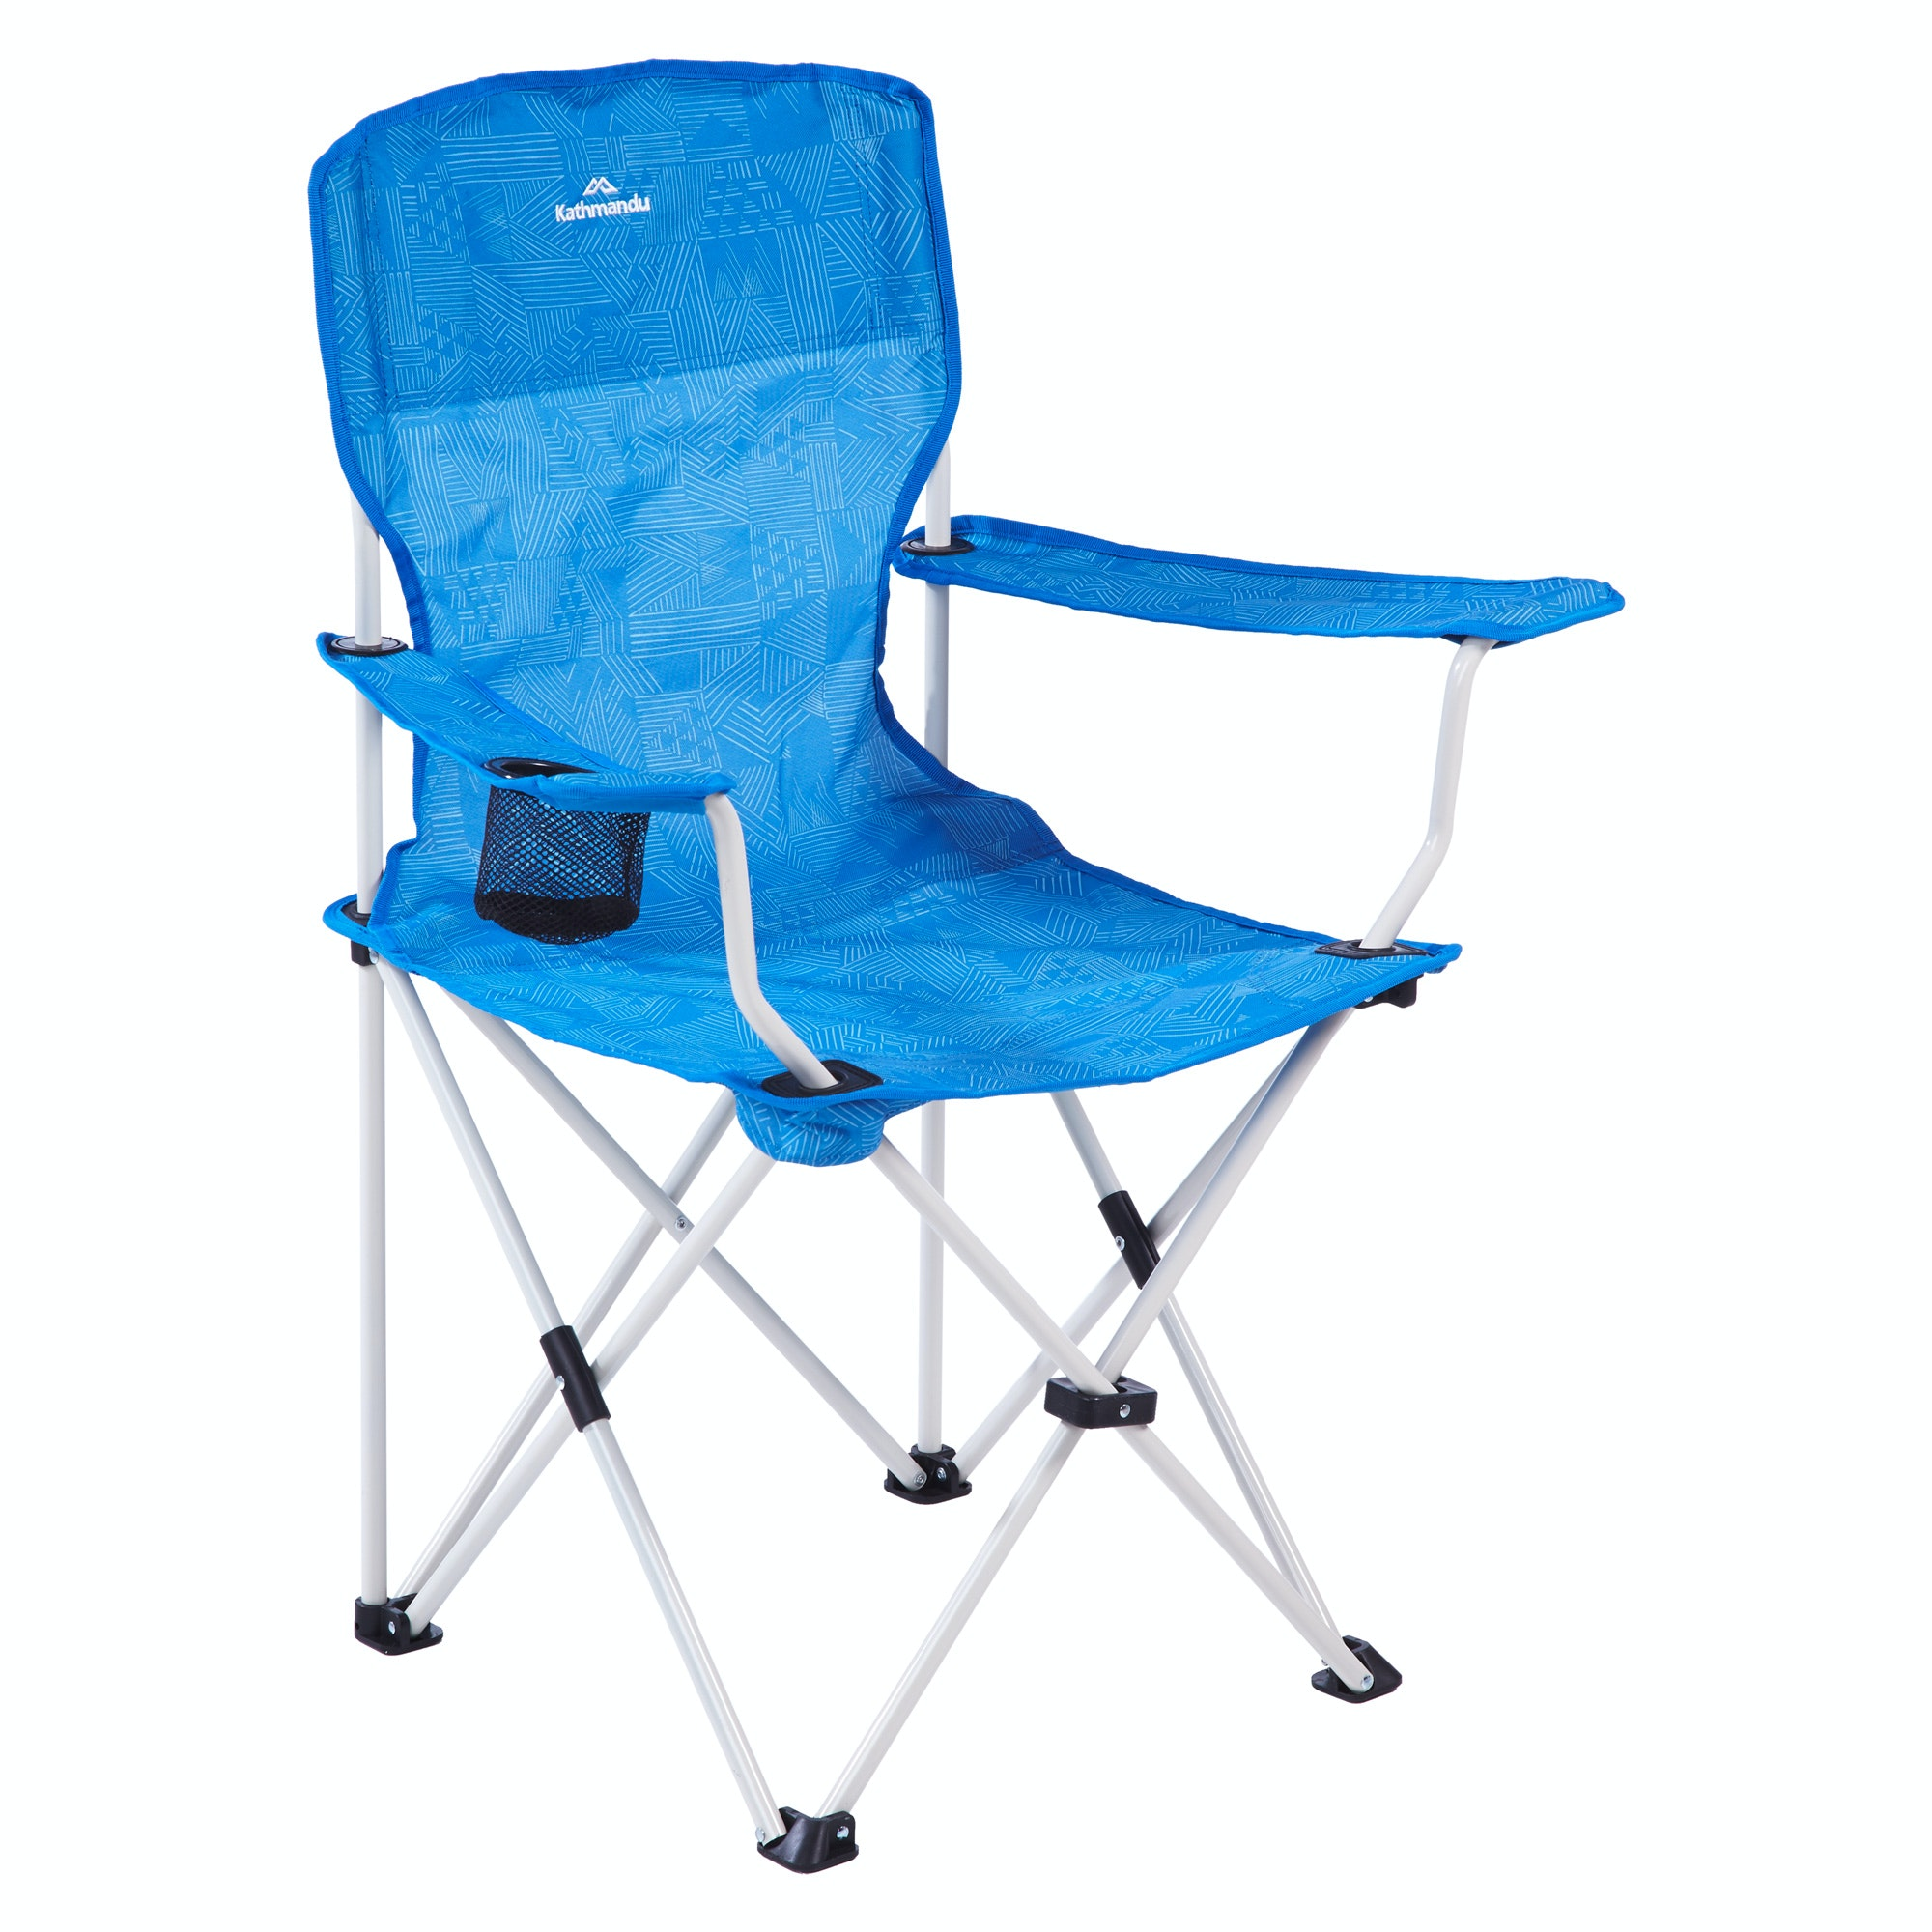 folding chair nepal peg perego high cover kathmandu roamer outdoor camping with cup